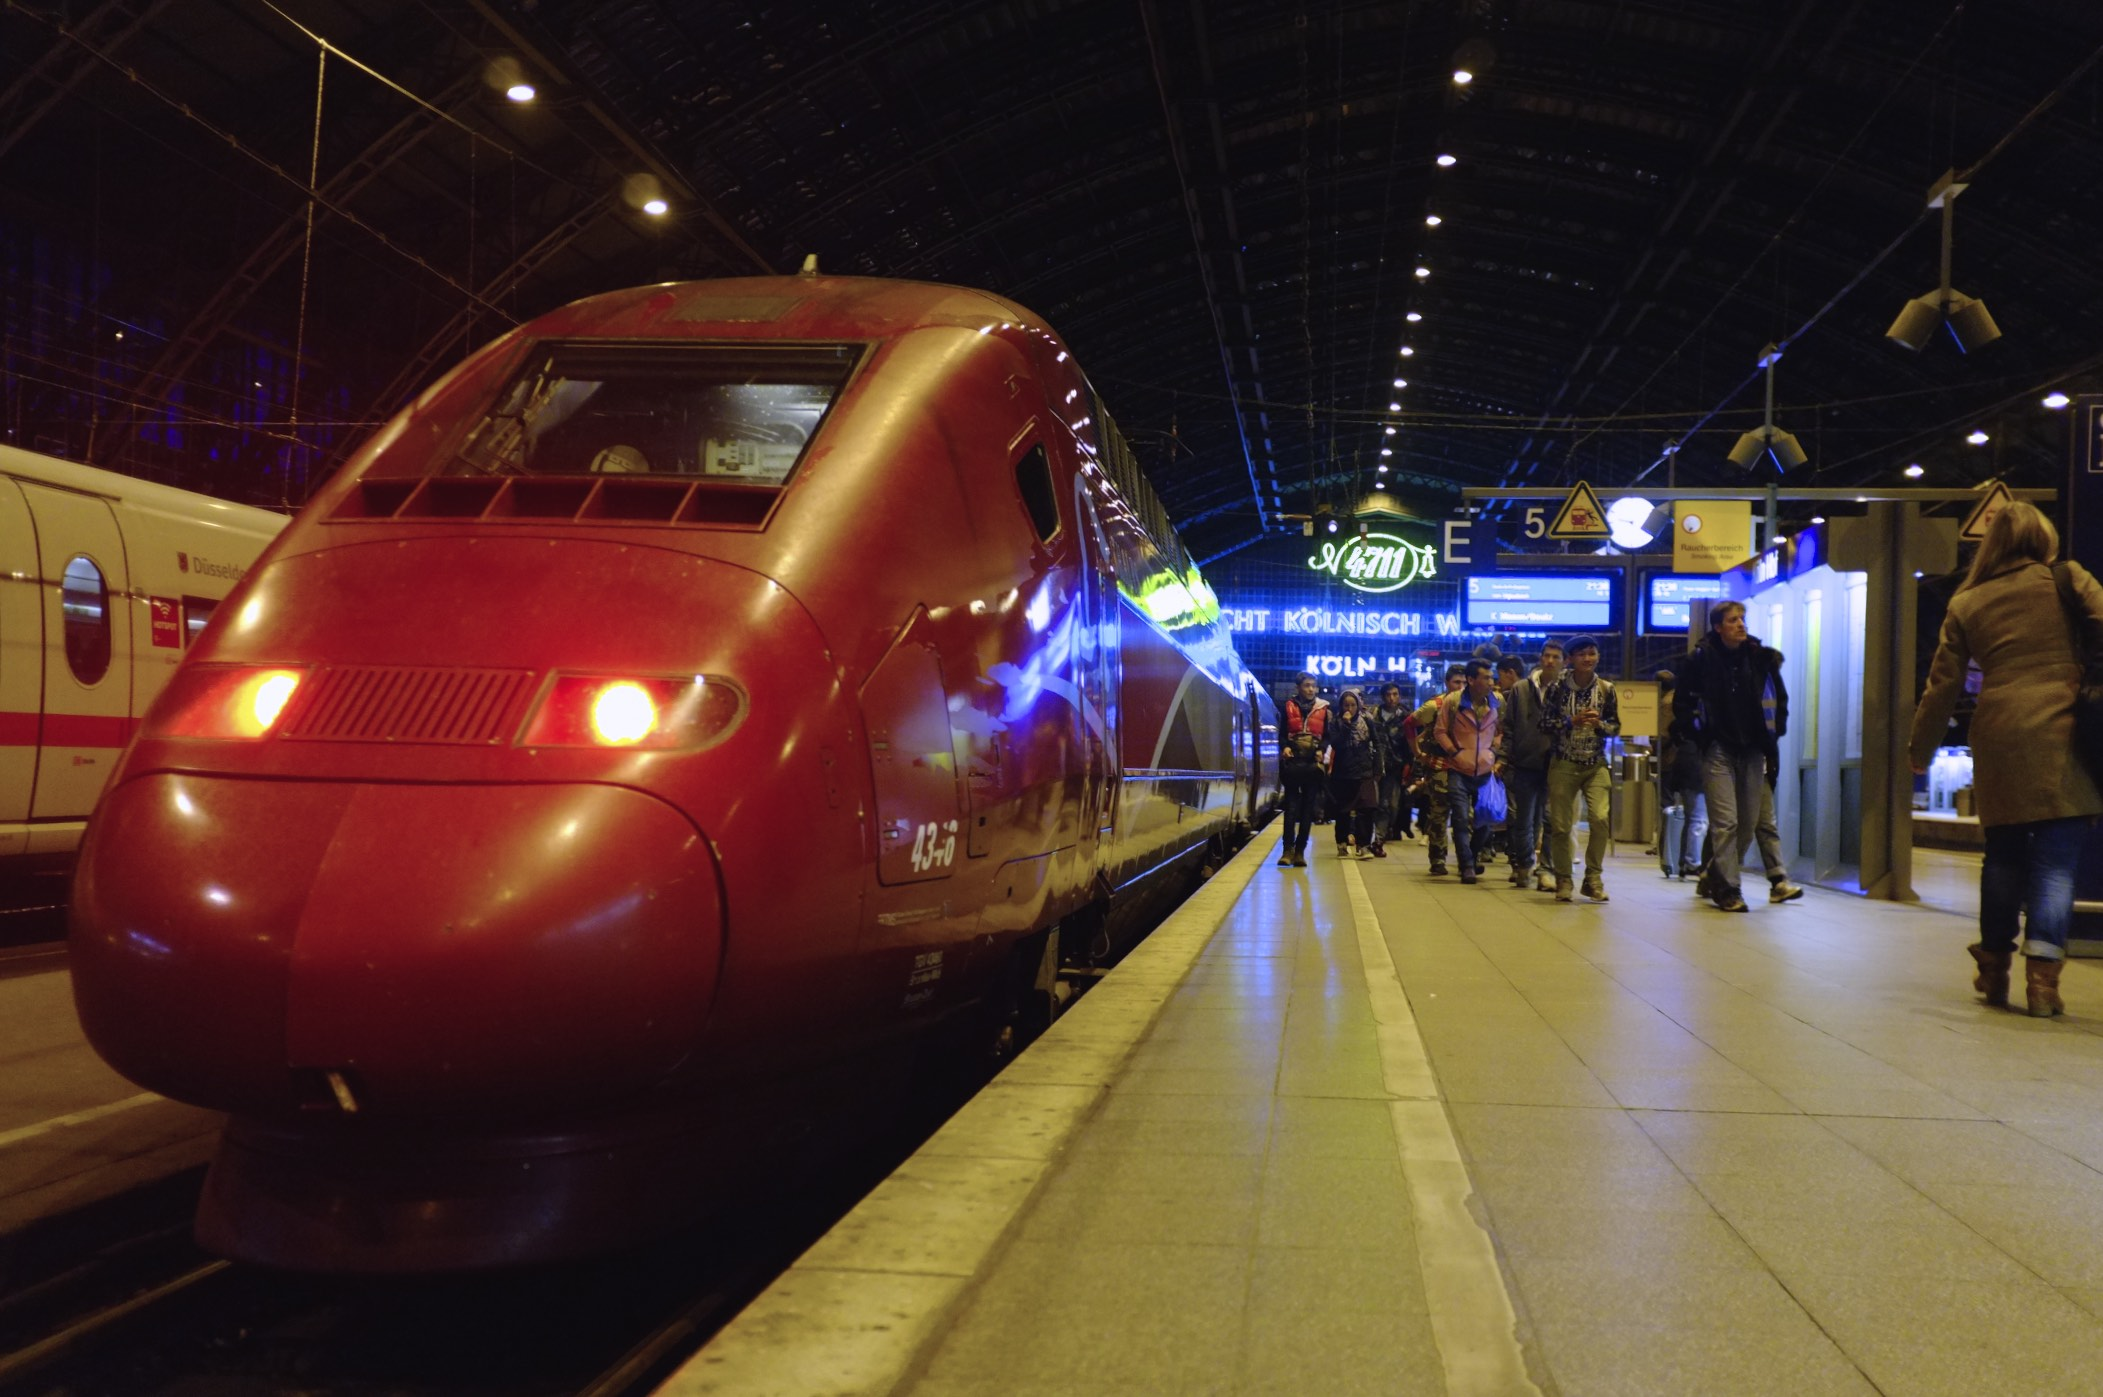 Our train from Brussels to Cologne